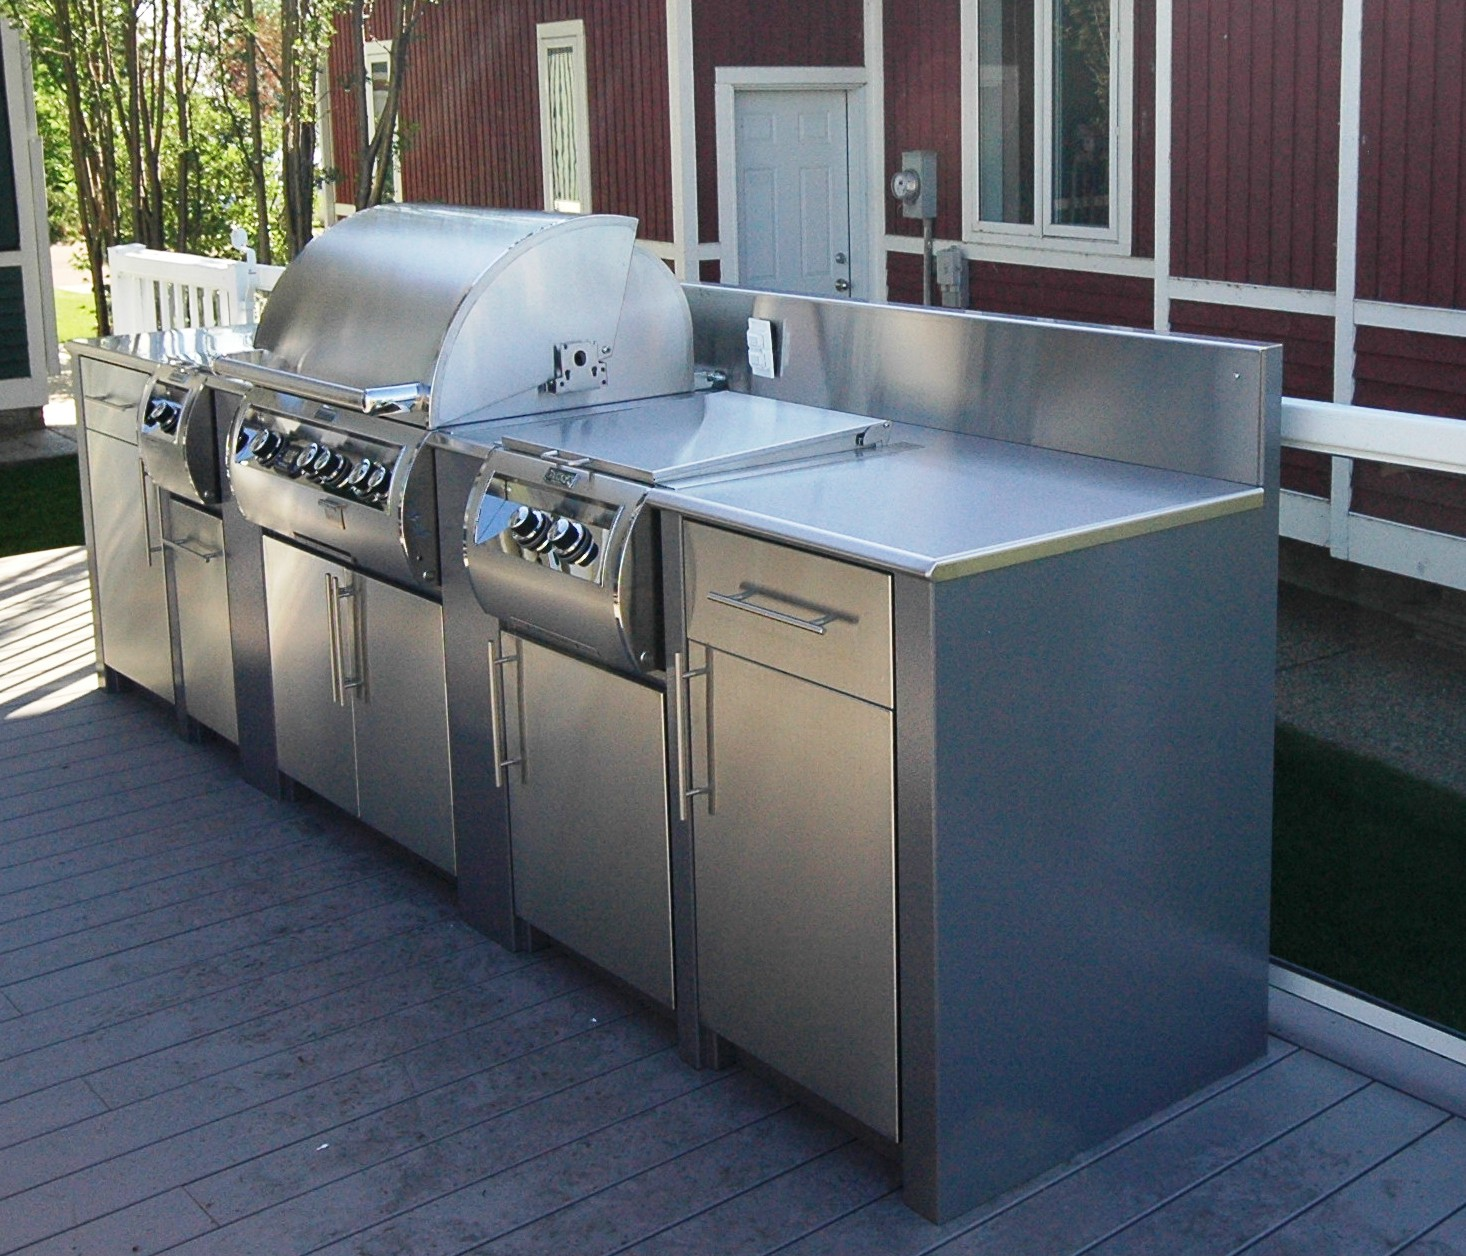 Best Kitchen Gallery: Stainless Steel Outdoor Kitchens Steelkitchen of Outdoor Kitchen Cabinets Stainless Steel on cal-ite.com